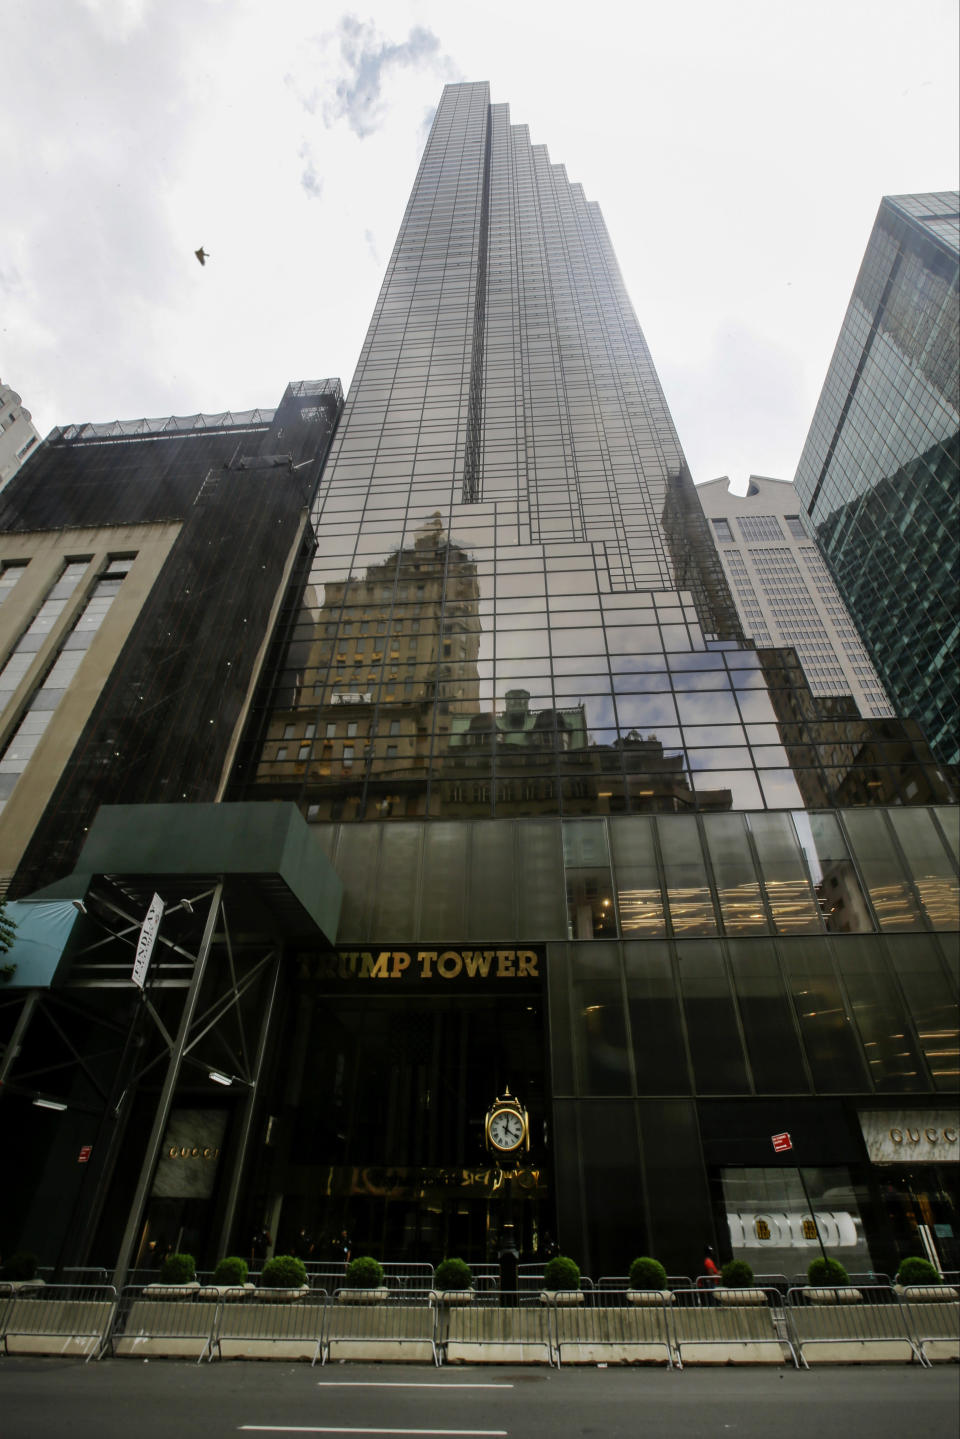 FILE - In this Tuesday, July 7, 2020 file photo, pedestrians walk past the Trump Tower building in New York. Trump's true financial picture has gotten renewed scrutiny in the wake of a New York Times report in September 2020 that he declared hundreds of millions in losses in recent years, allowing him to pay just $750 in taxes the year he won the presidency, and nothing for 10 of 15 years before that. (AP Photo/Frank Franklin II, File)